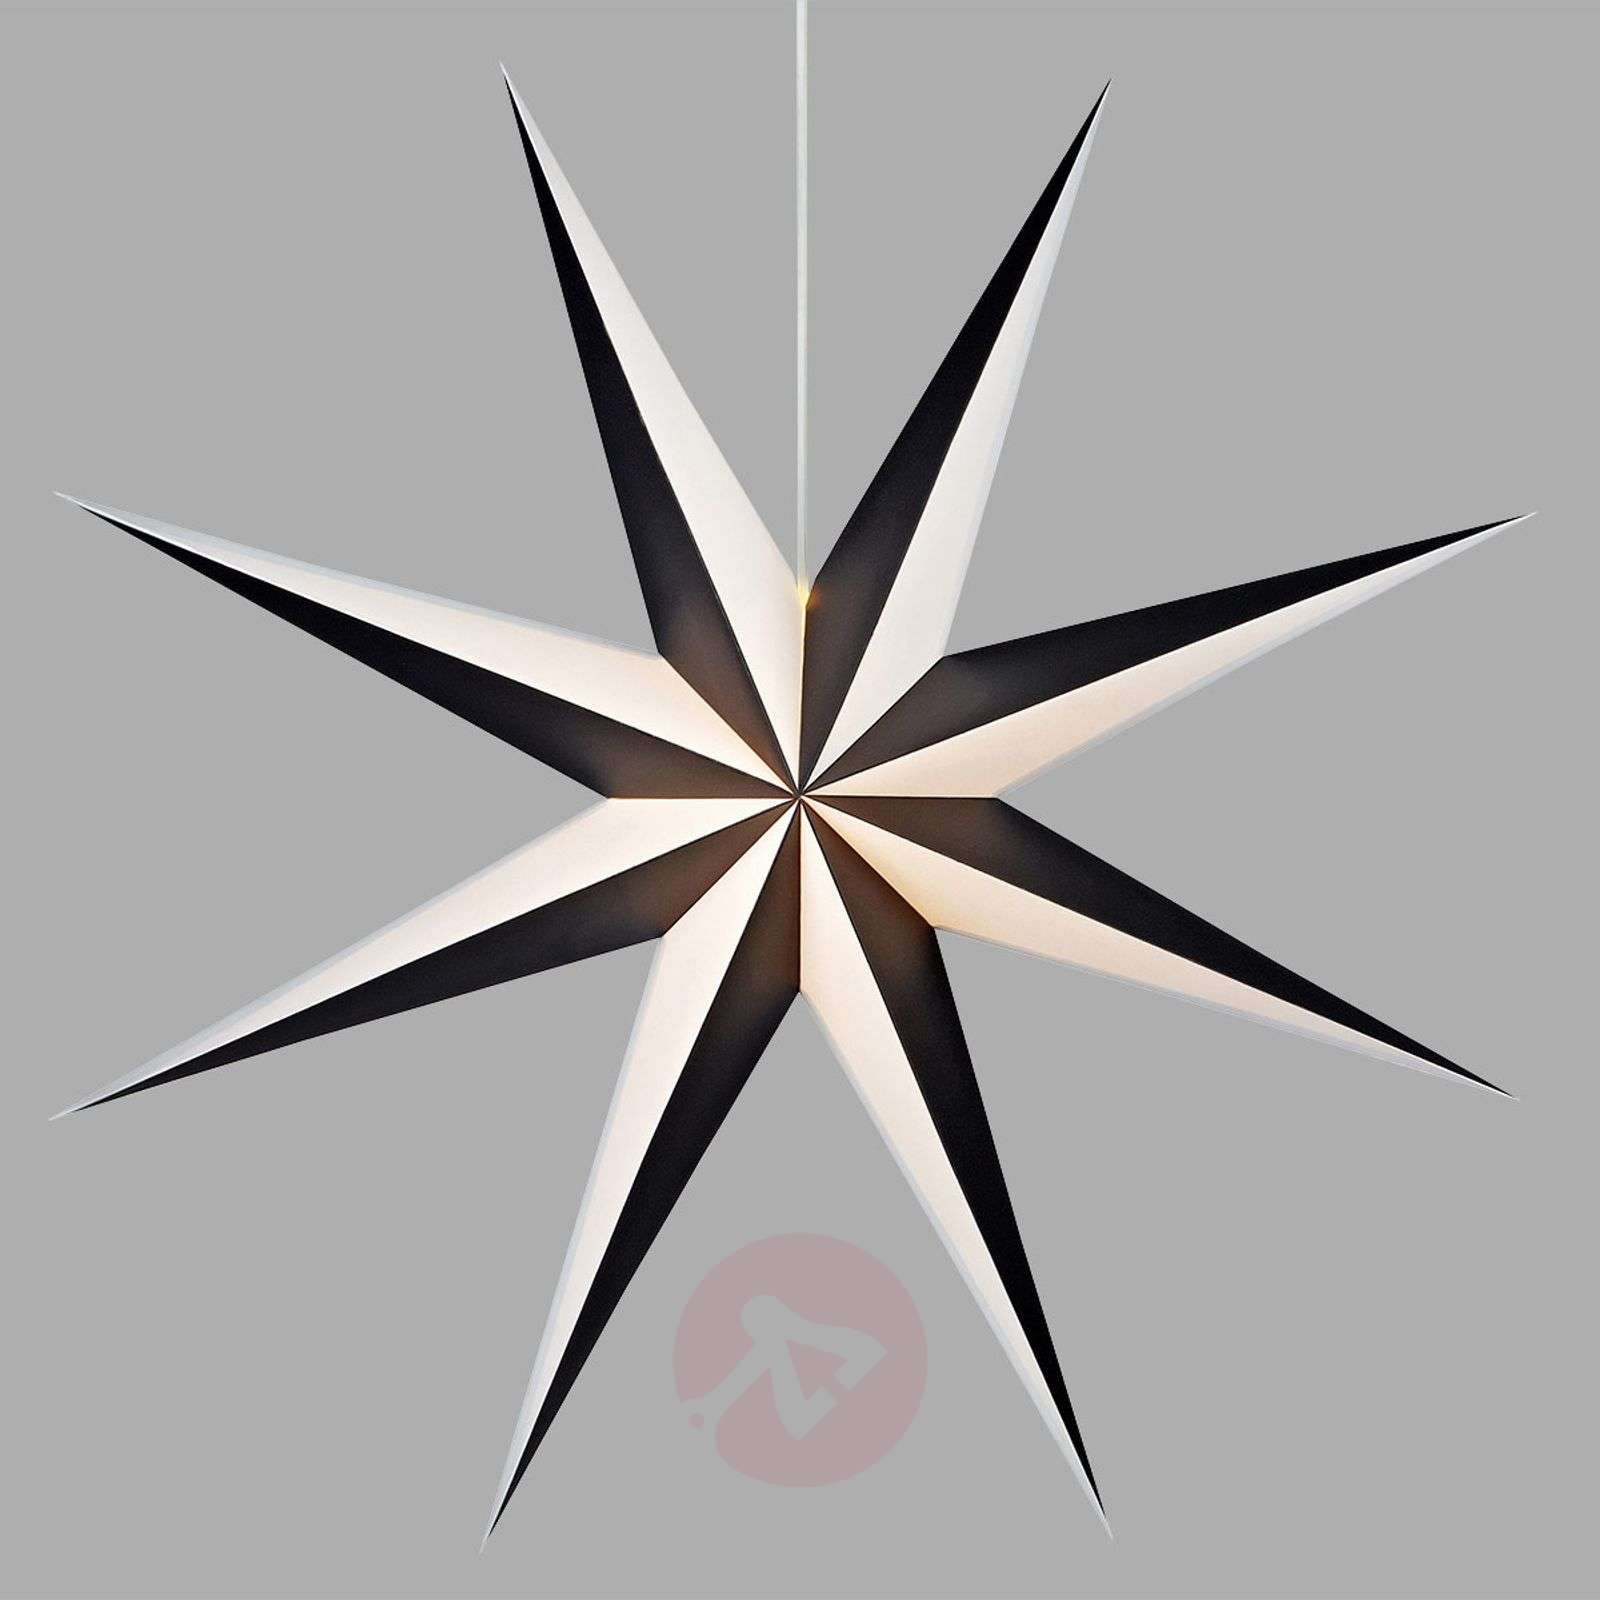 Decorative paper star Alva-6507513X-01